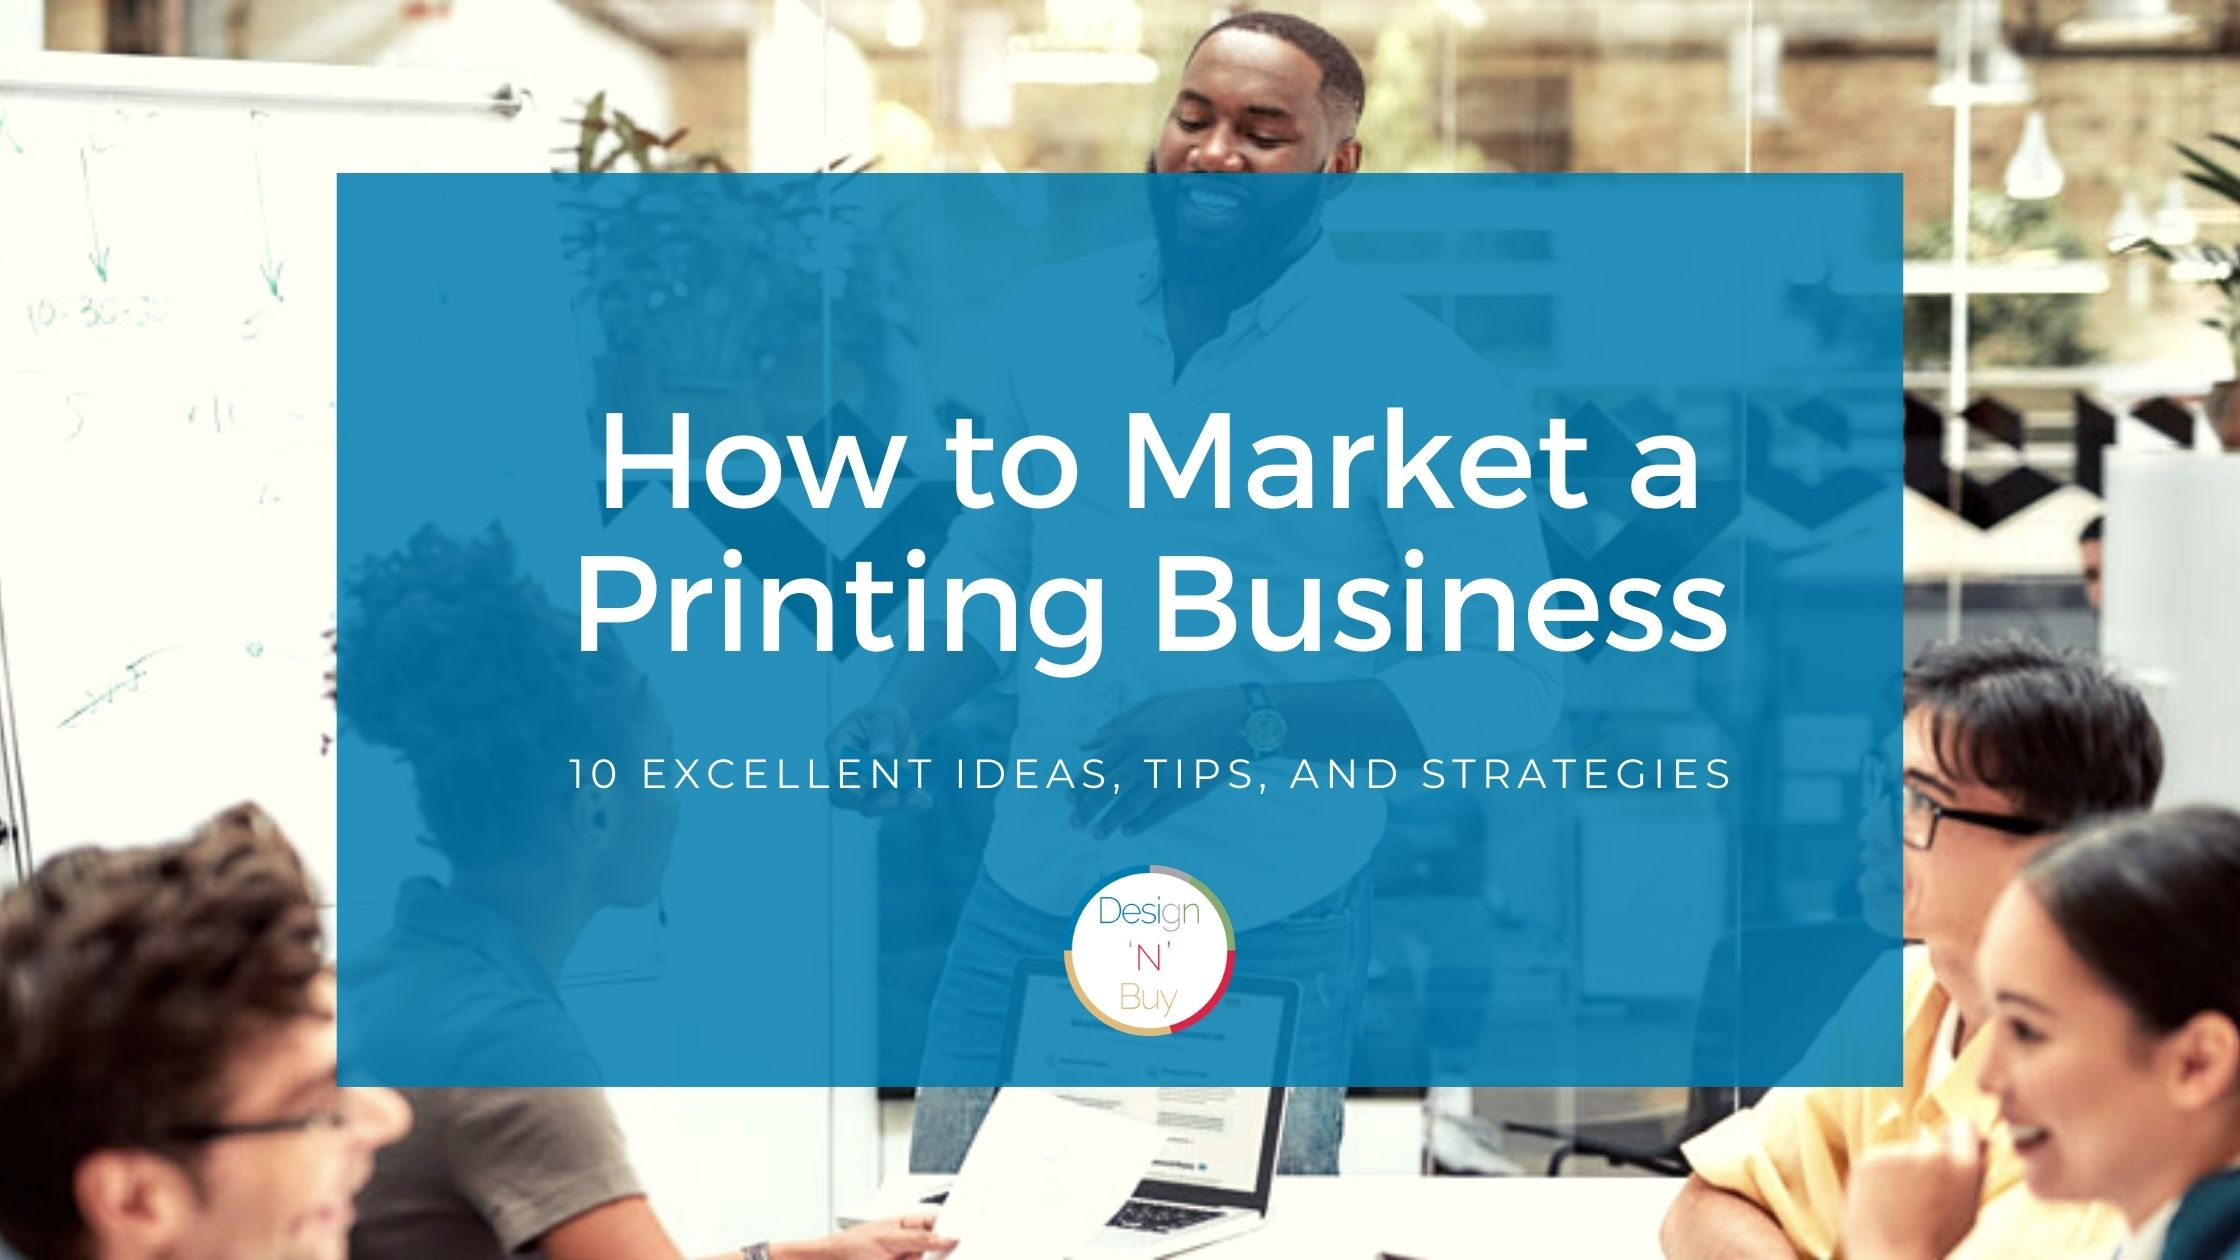 How to Market a Printing Business